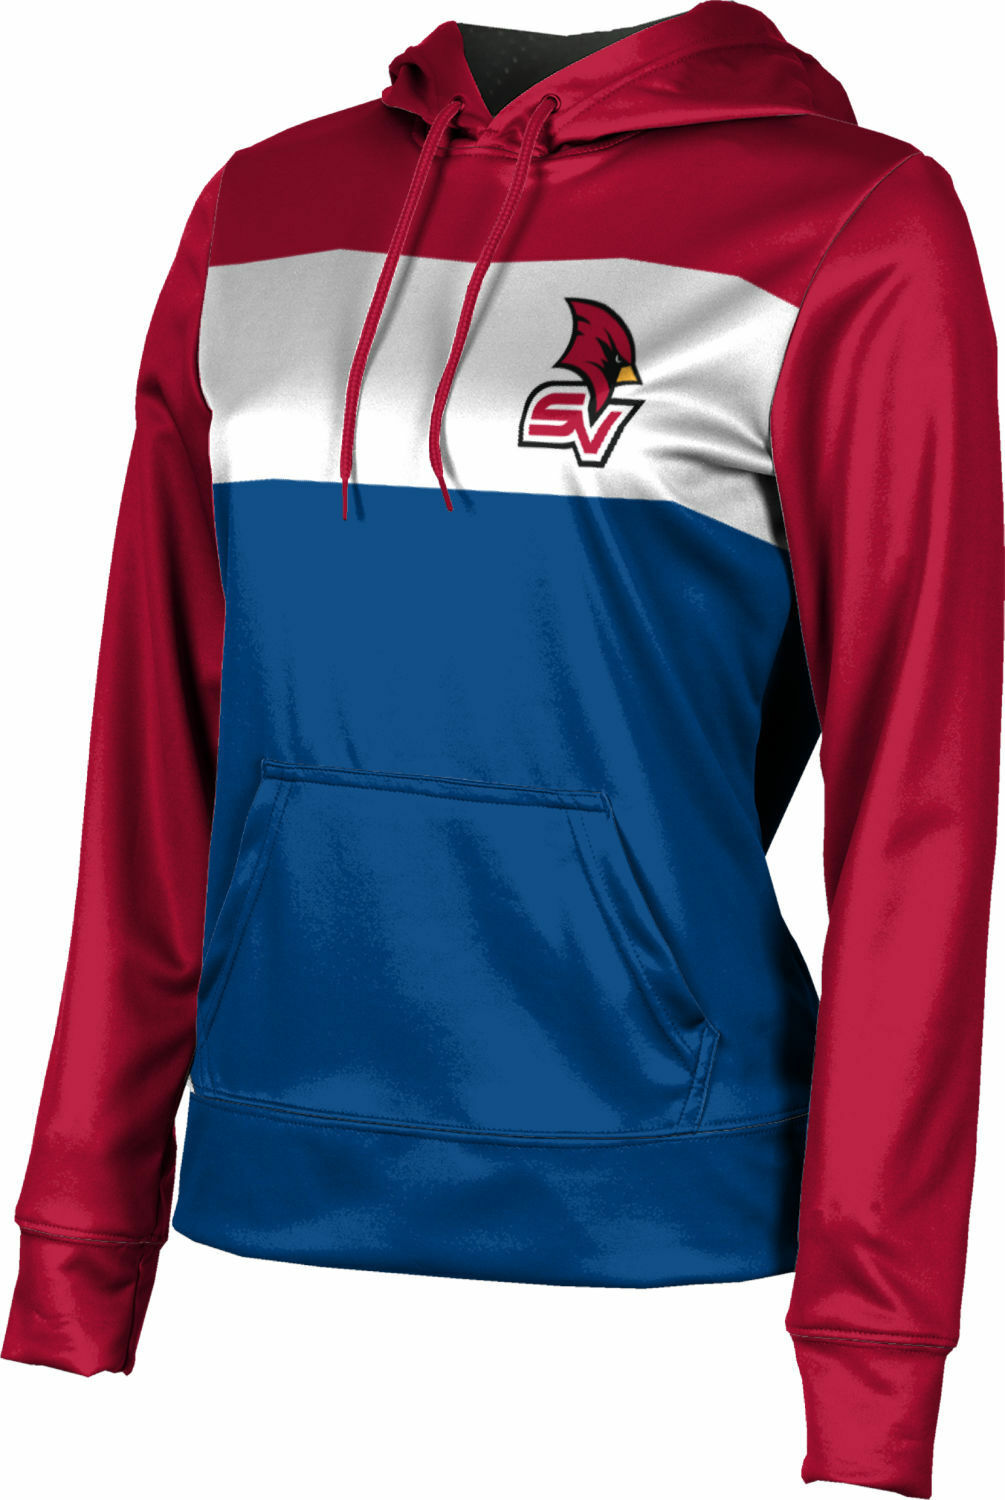 Women's Saginaw Valley State University Prime Hoodie Sweatshirt (Apparel) (SVSU)